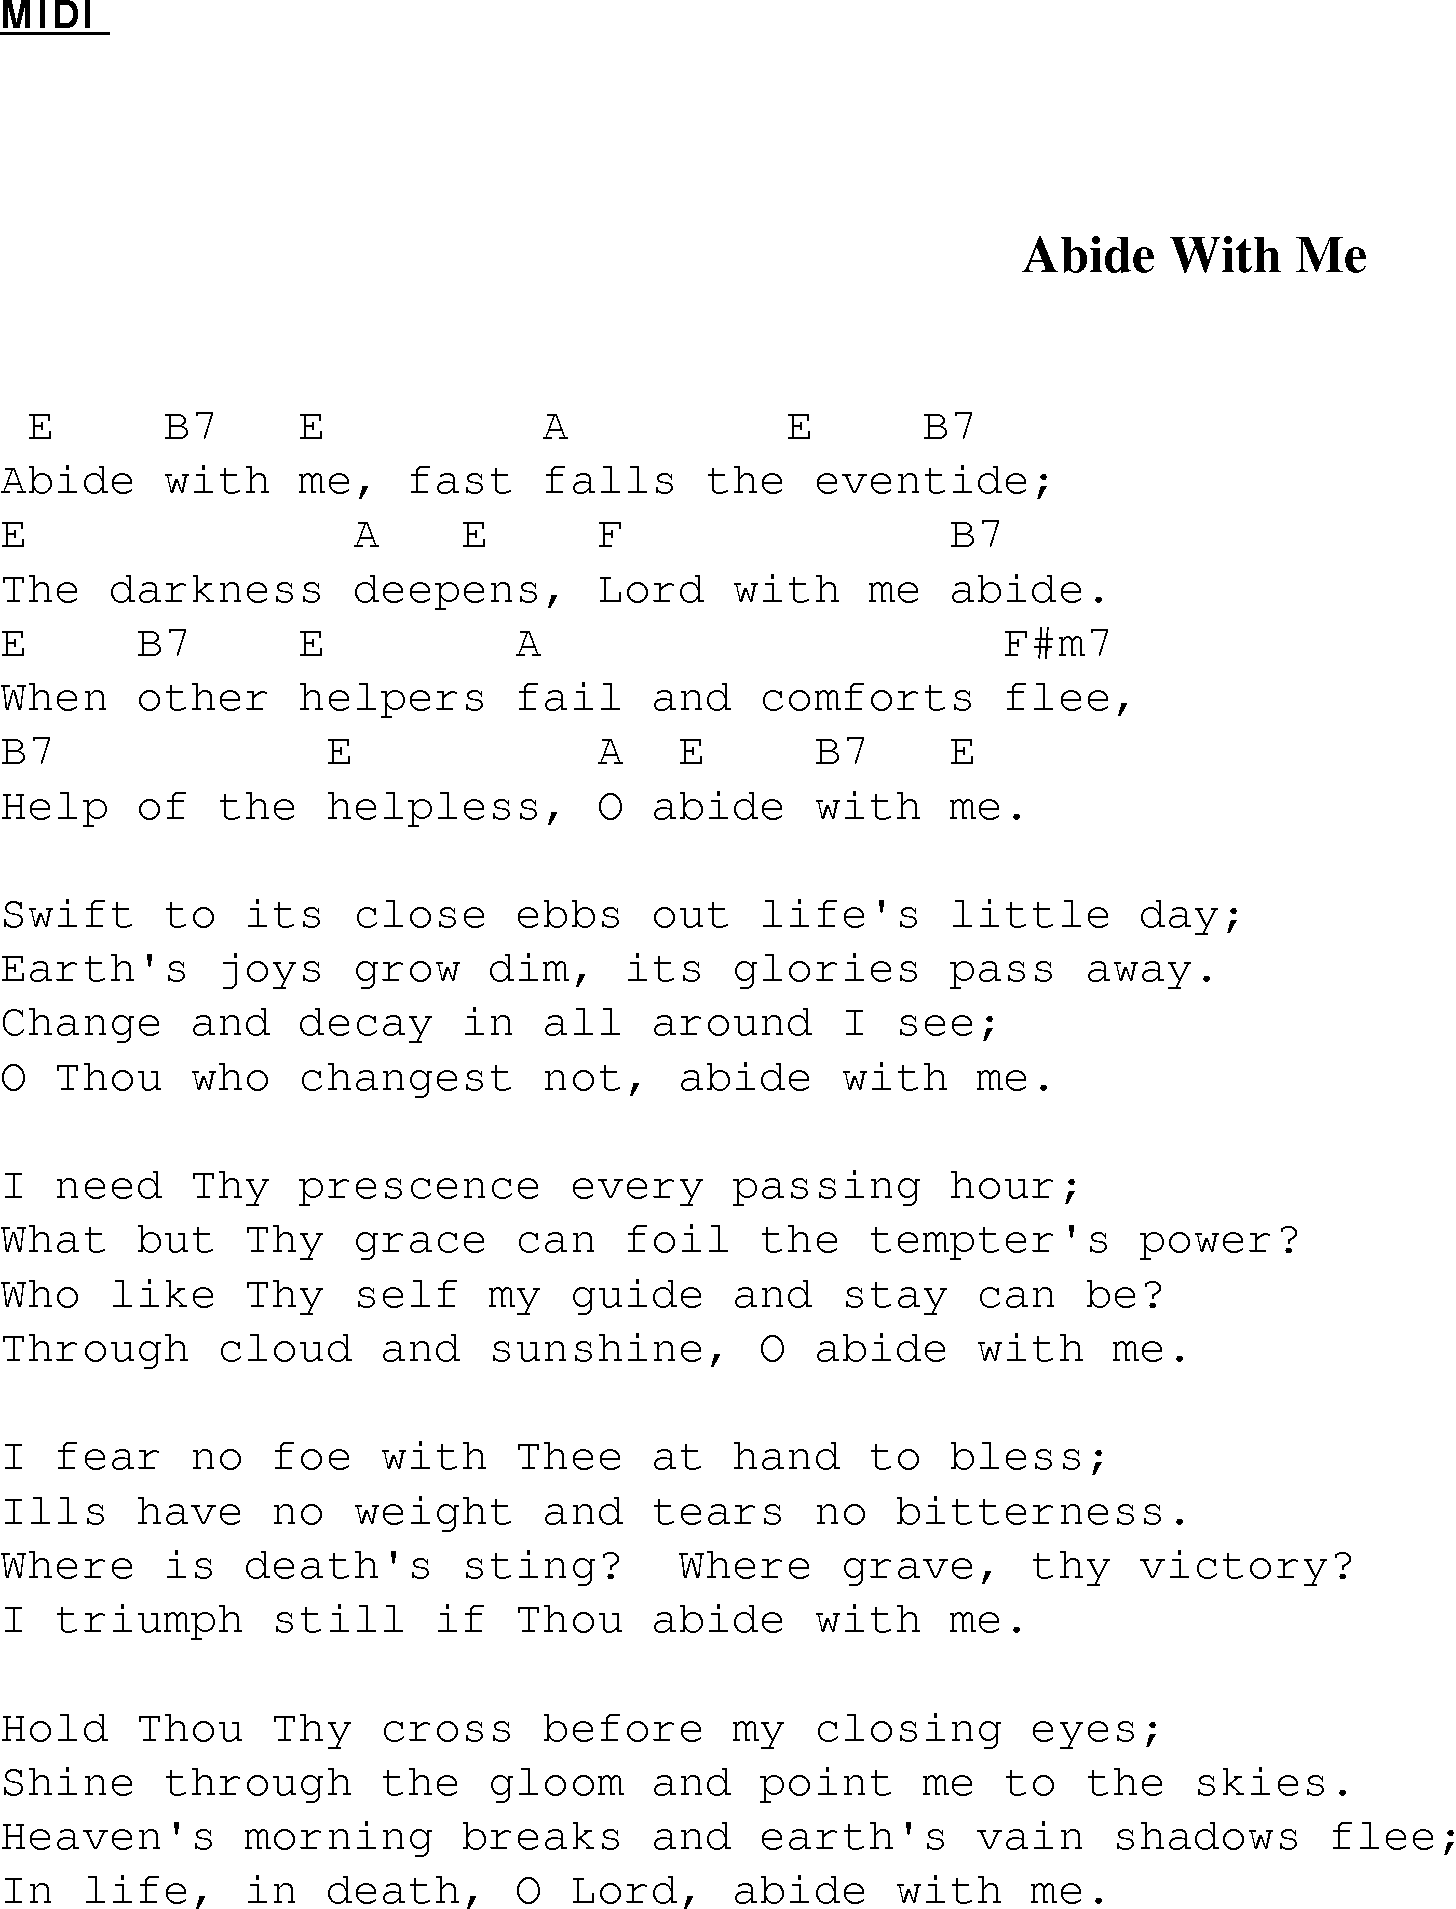 Abide With Me Christian Gospel Song Lyrics And Chords